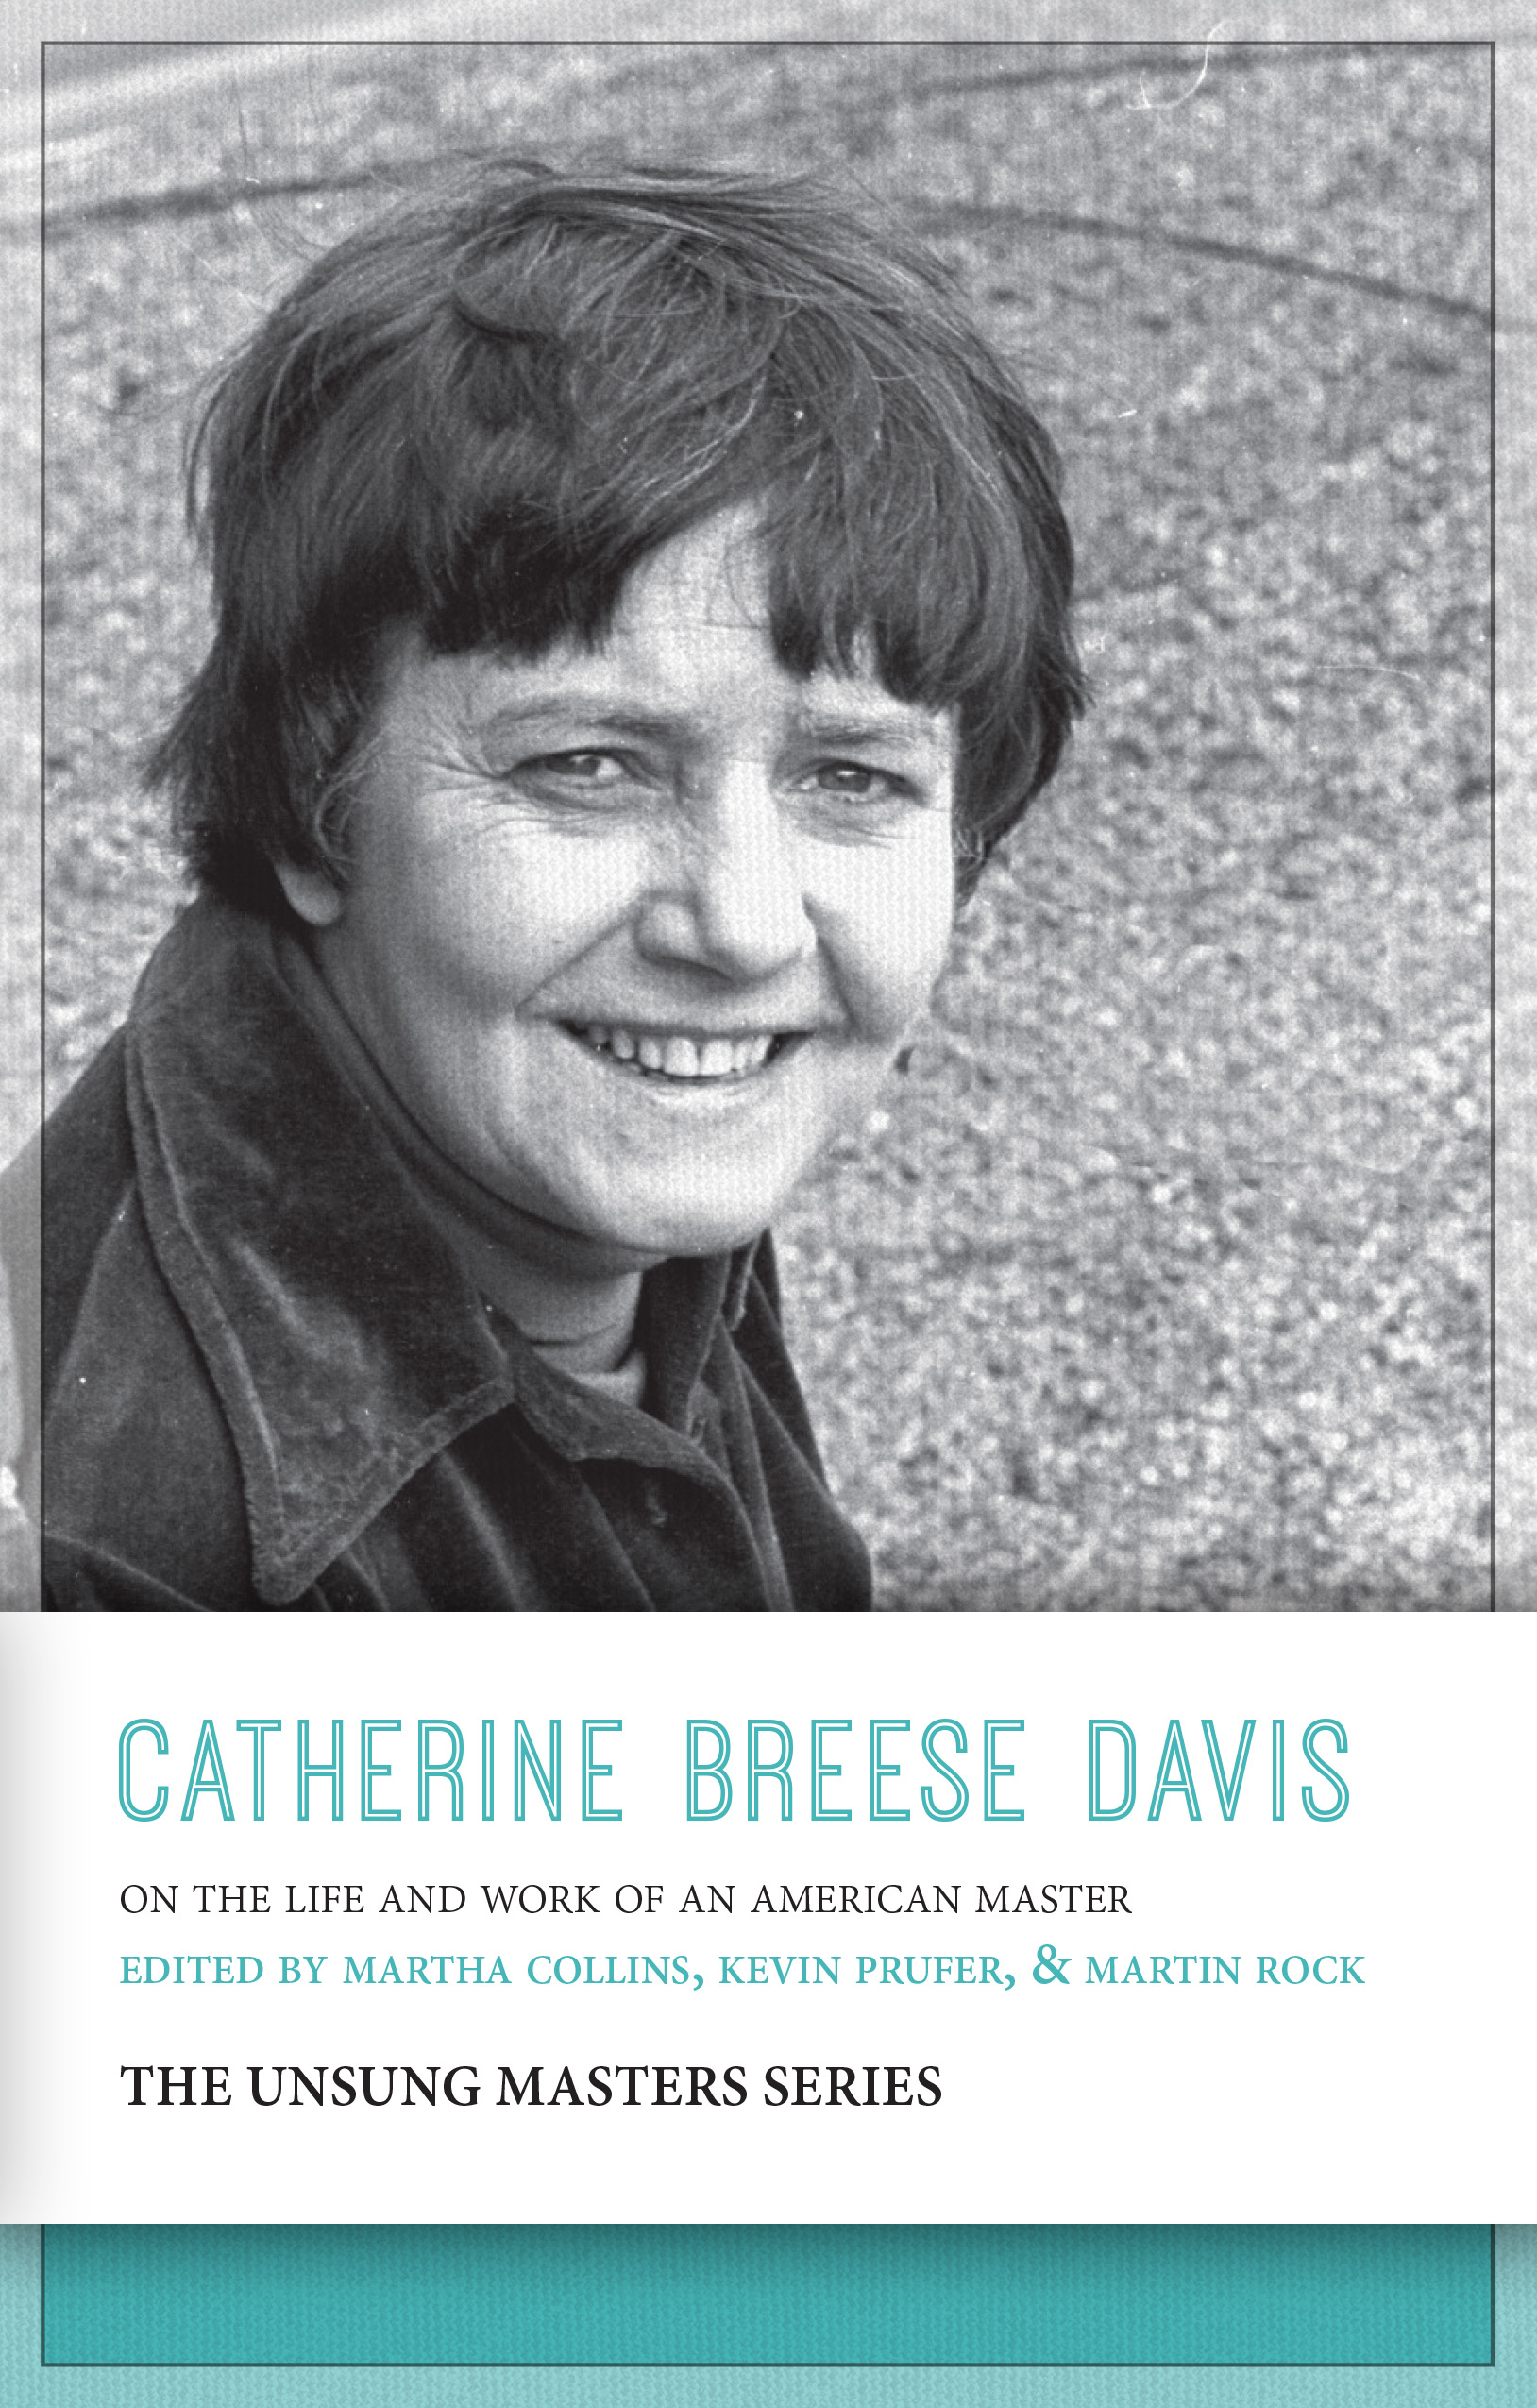 Catherine-Breese-Davis-Book-Cover-front